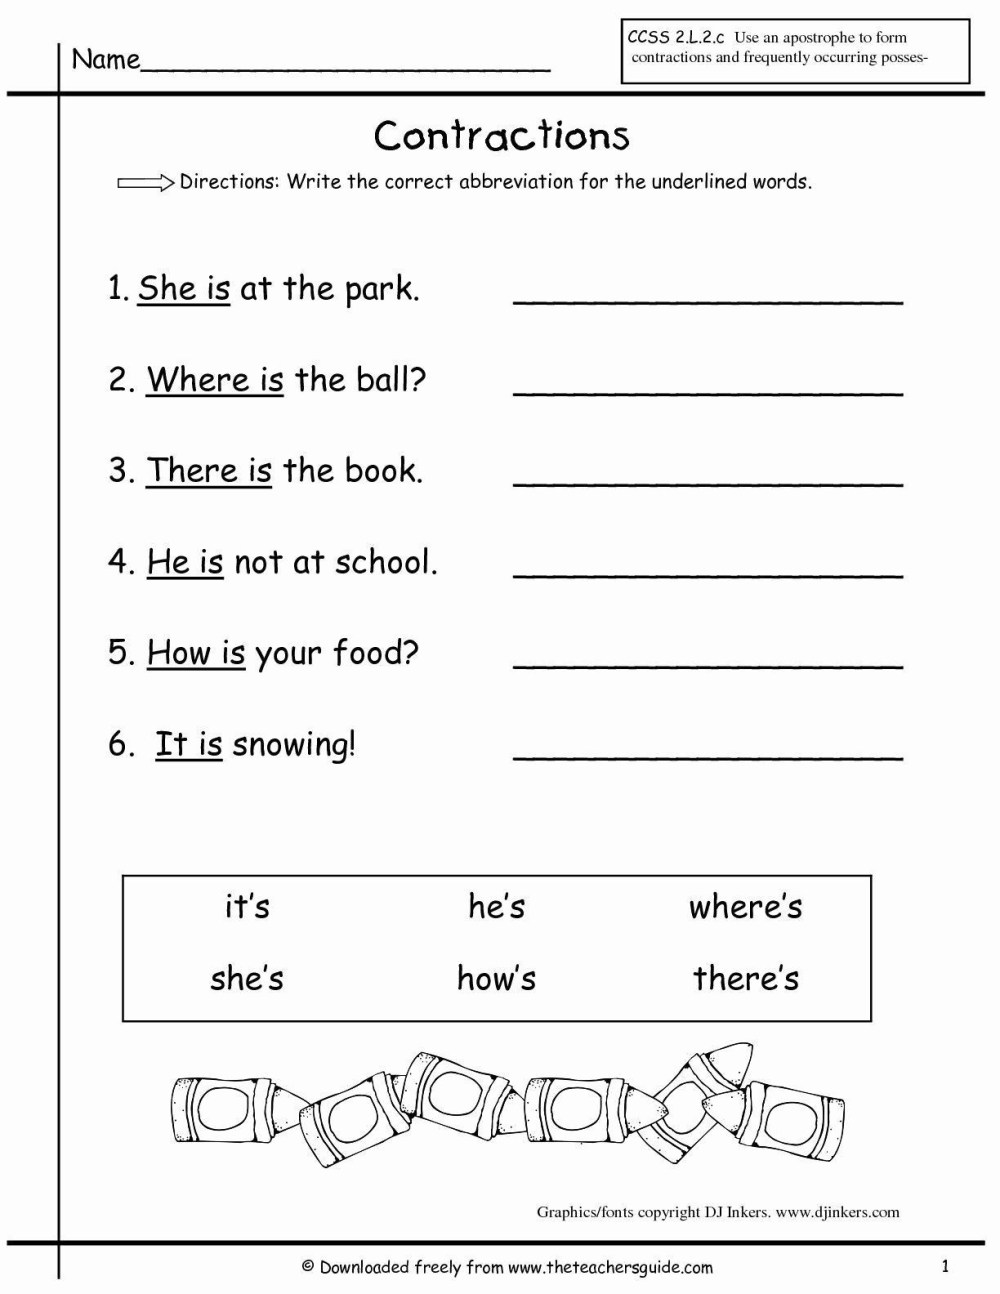 medium resolution of Printable Erosion Worksheets   Printable Worksheets and Activities for  Teachers